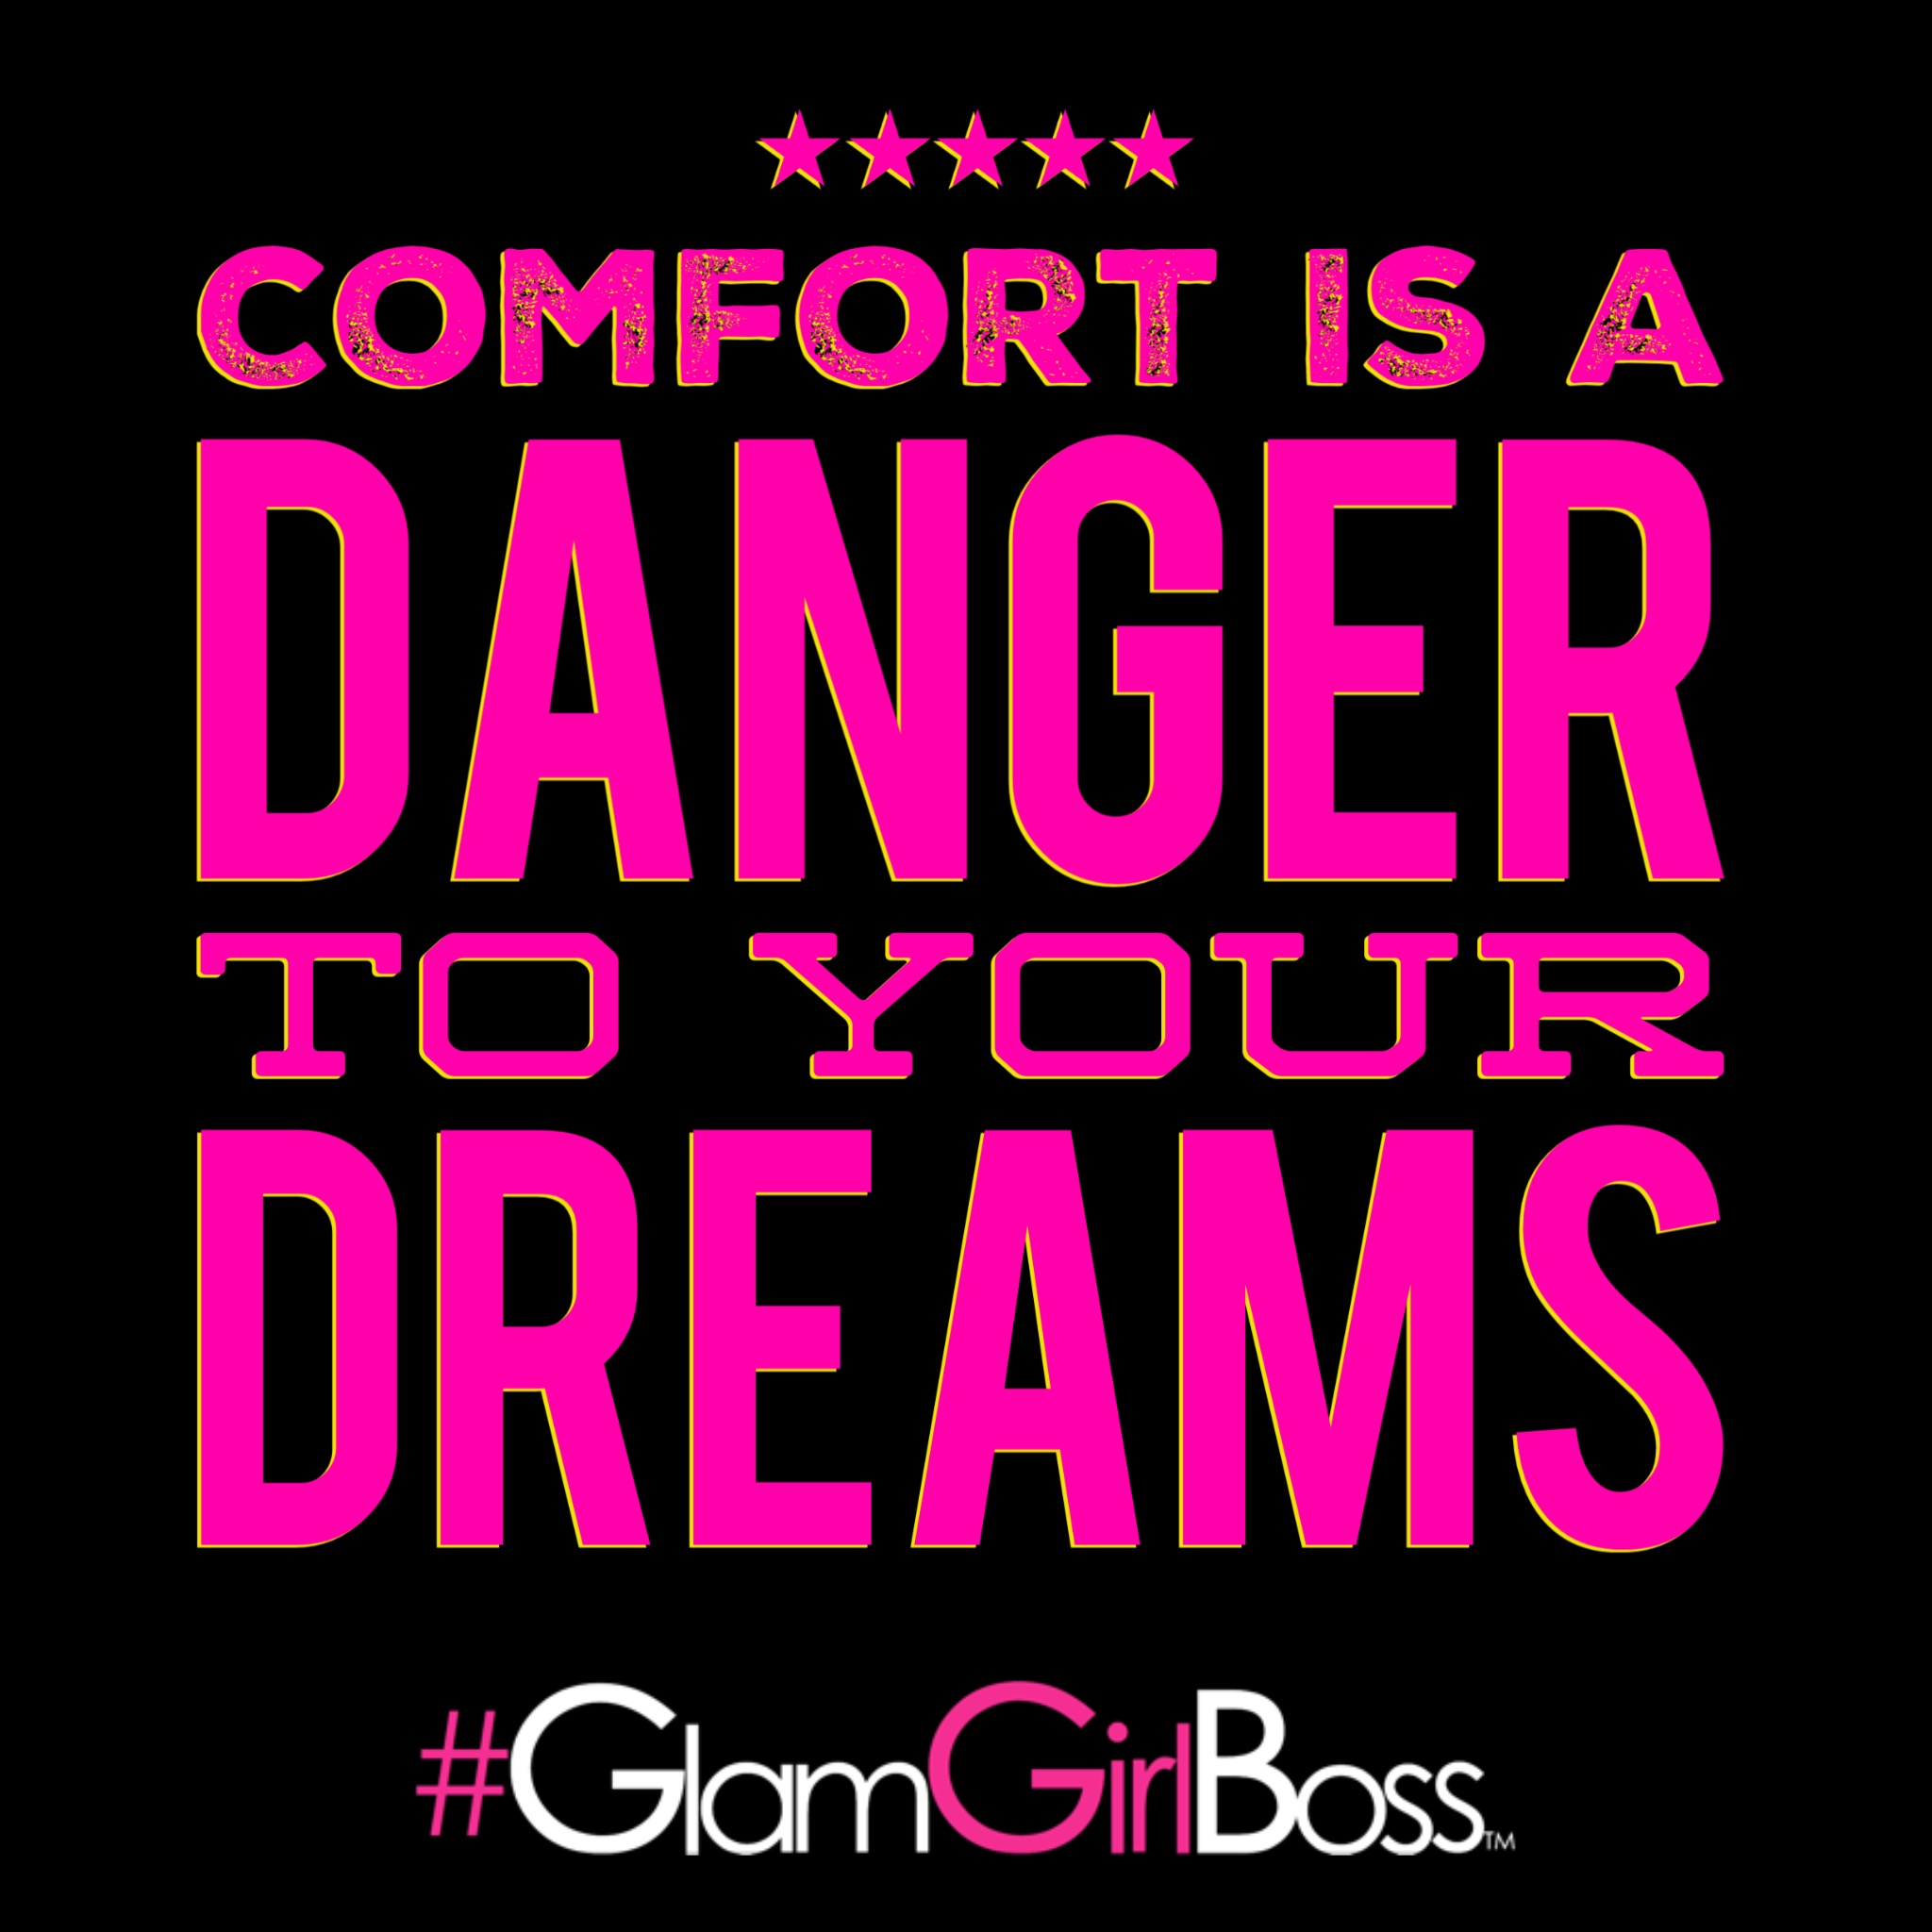 Comfort is a danger to your dreams.